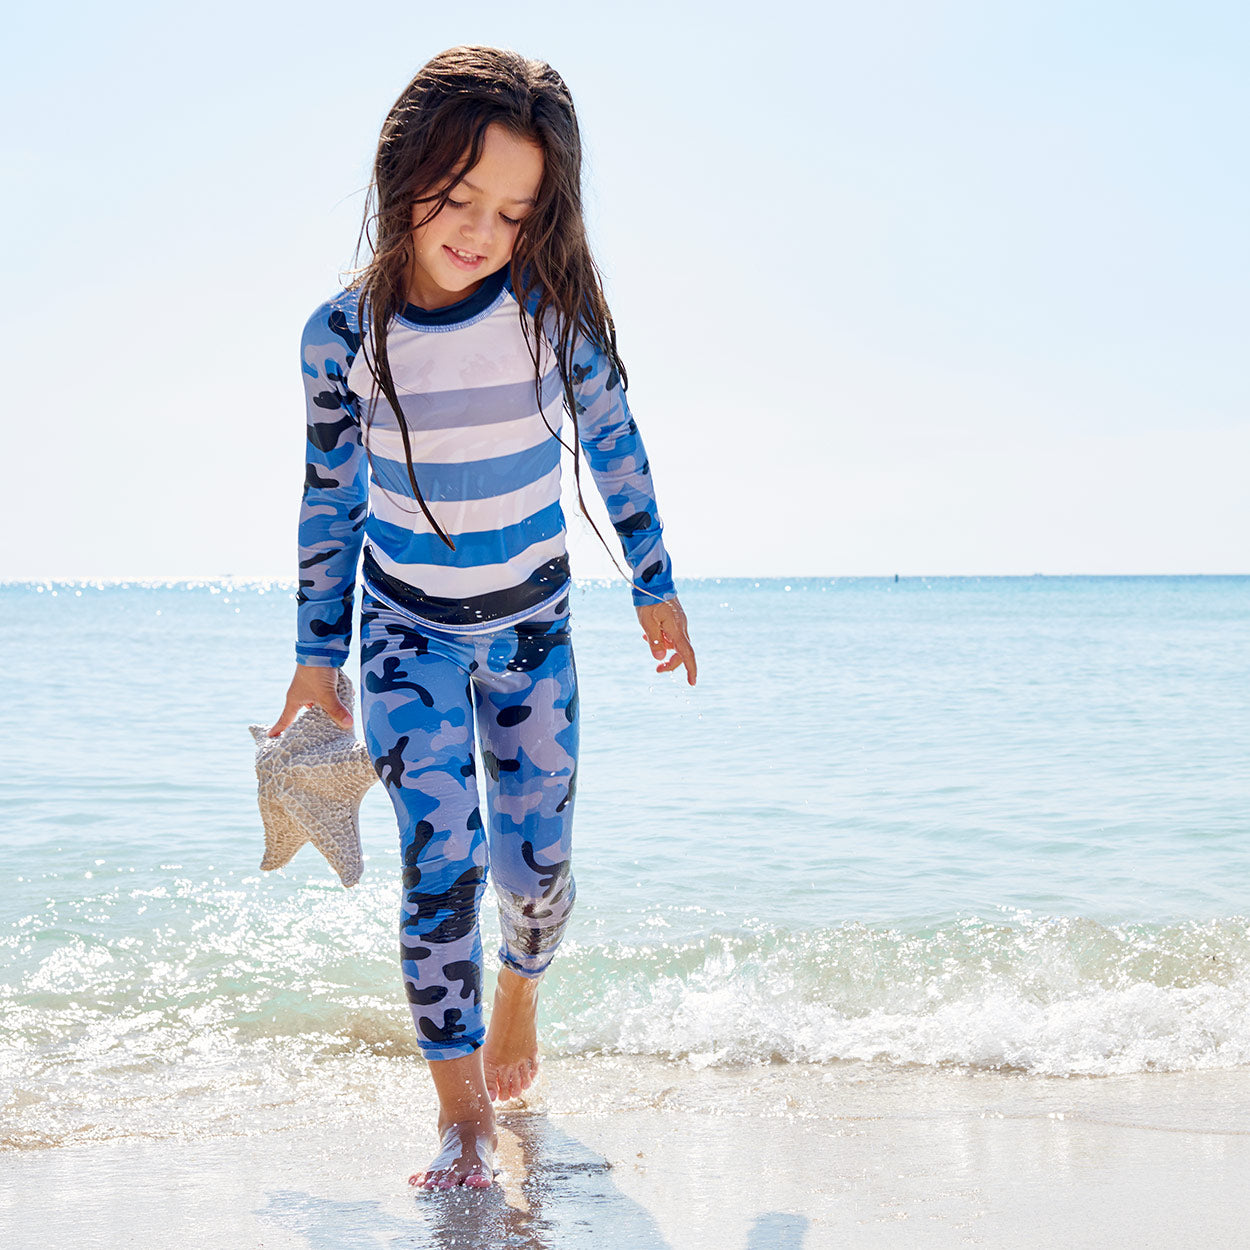 Blue Camo 2Pc Rash Guard Set Girls Shell Found On The Beach Sunpoplife